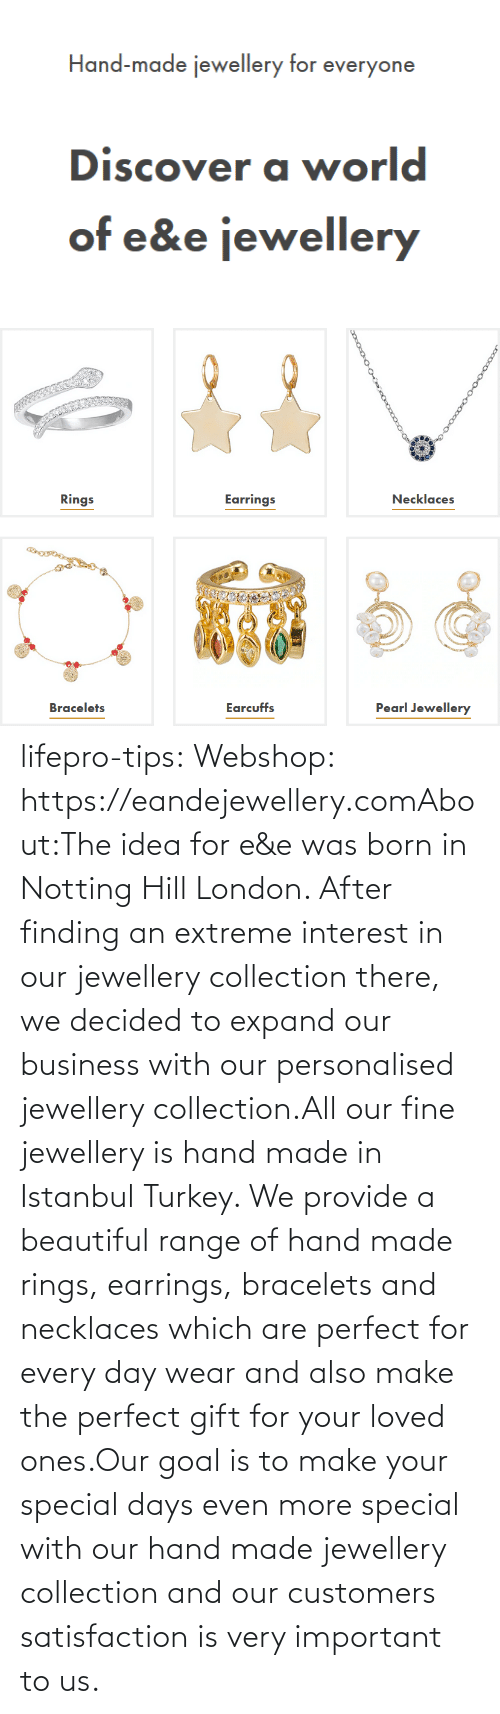 every day: lifepro-tips: Webshop: https://eandejewellery.comAbout:The idea for e&e was born in Notting Hill London. After  finding an extreme interest in our jewellery collection there, we  decided to expand our business with our personalised jewellery  collection.All our fine jewellery is hand made in Istanbul Turkey. We  provide a beautiful range of hand made rings, earrings, bracelets and  necklaces which are perfect for every day wear and also make the perfect  gift for your loved ones.Our goal is to make your special days even more special with  our hand made jewellery collection and our customers satisfaction is  very important to us.